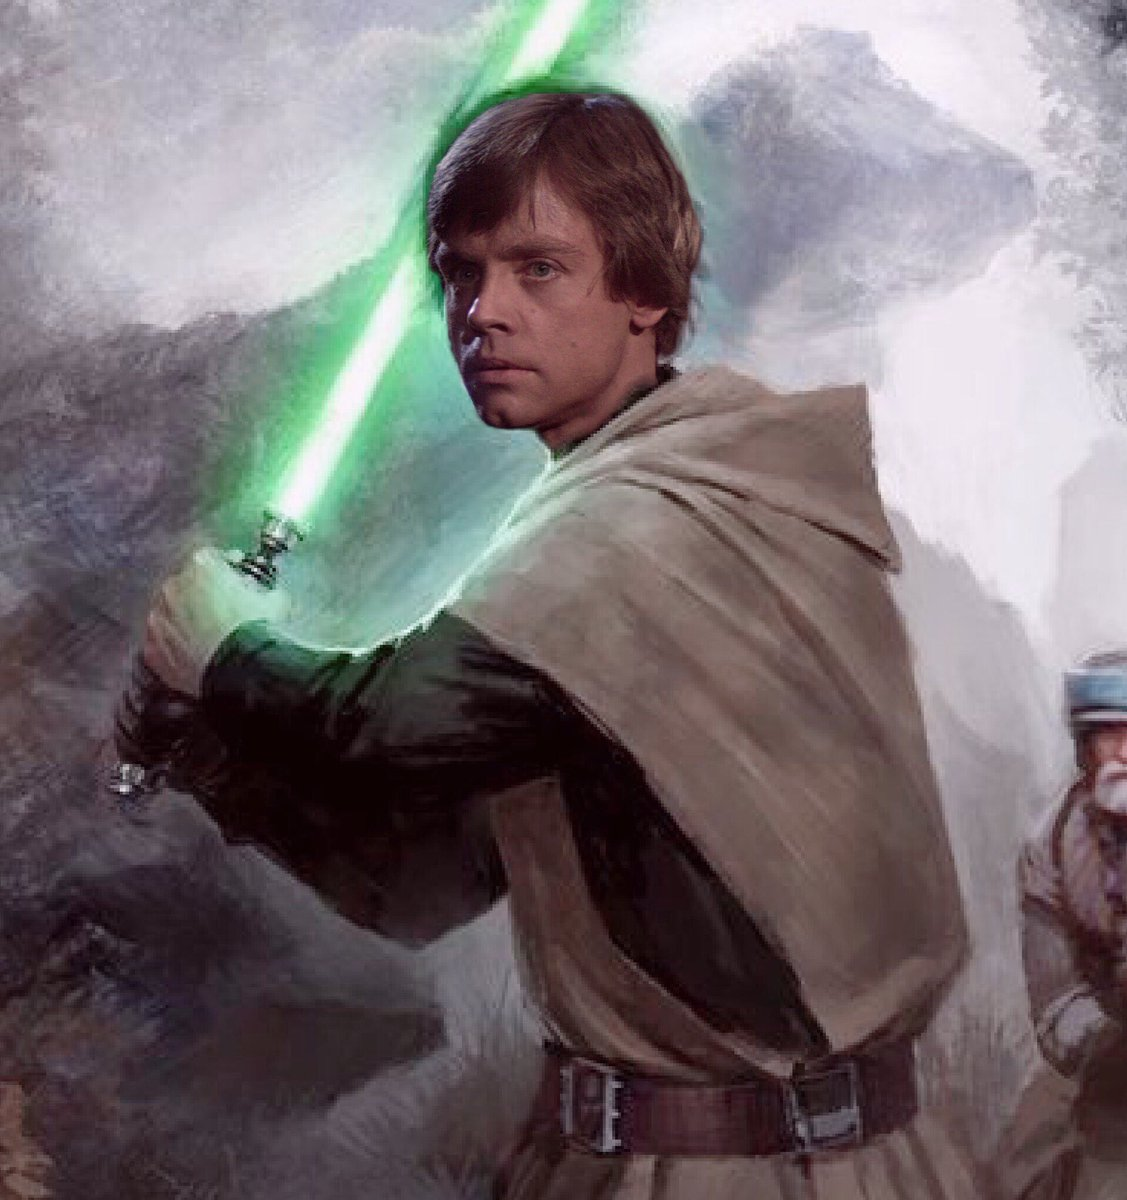 Luke Skywalker On Twitter Art But Reimagined By Me To Give Them A More Realistic Look Let Know What You Think